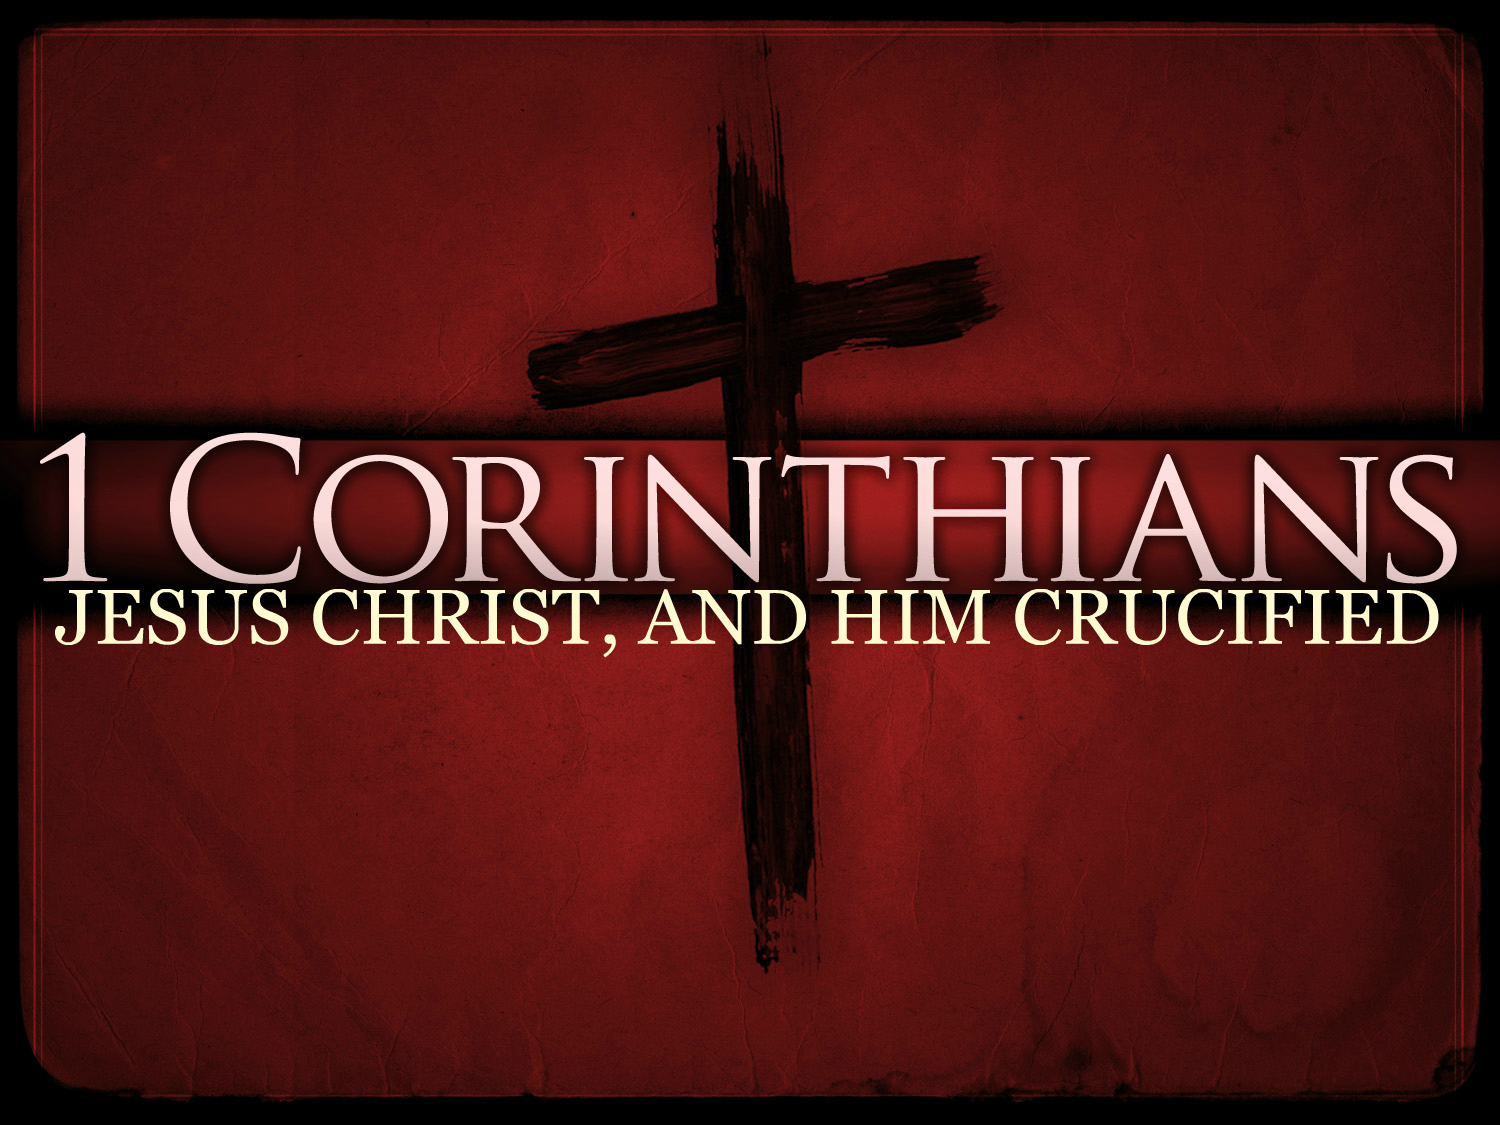 Crucified With Christ - AllAboutFollowingJesus.org